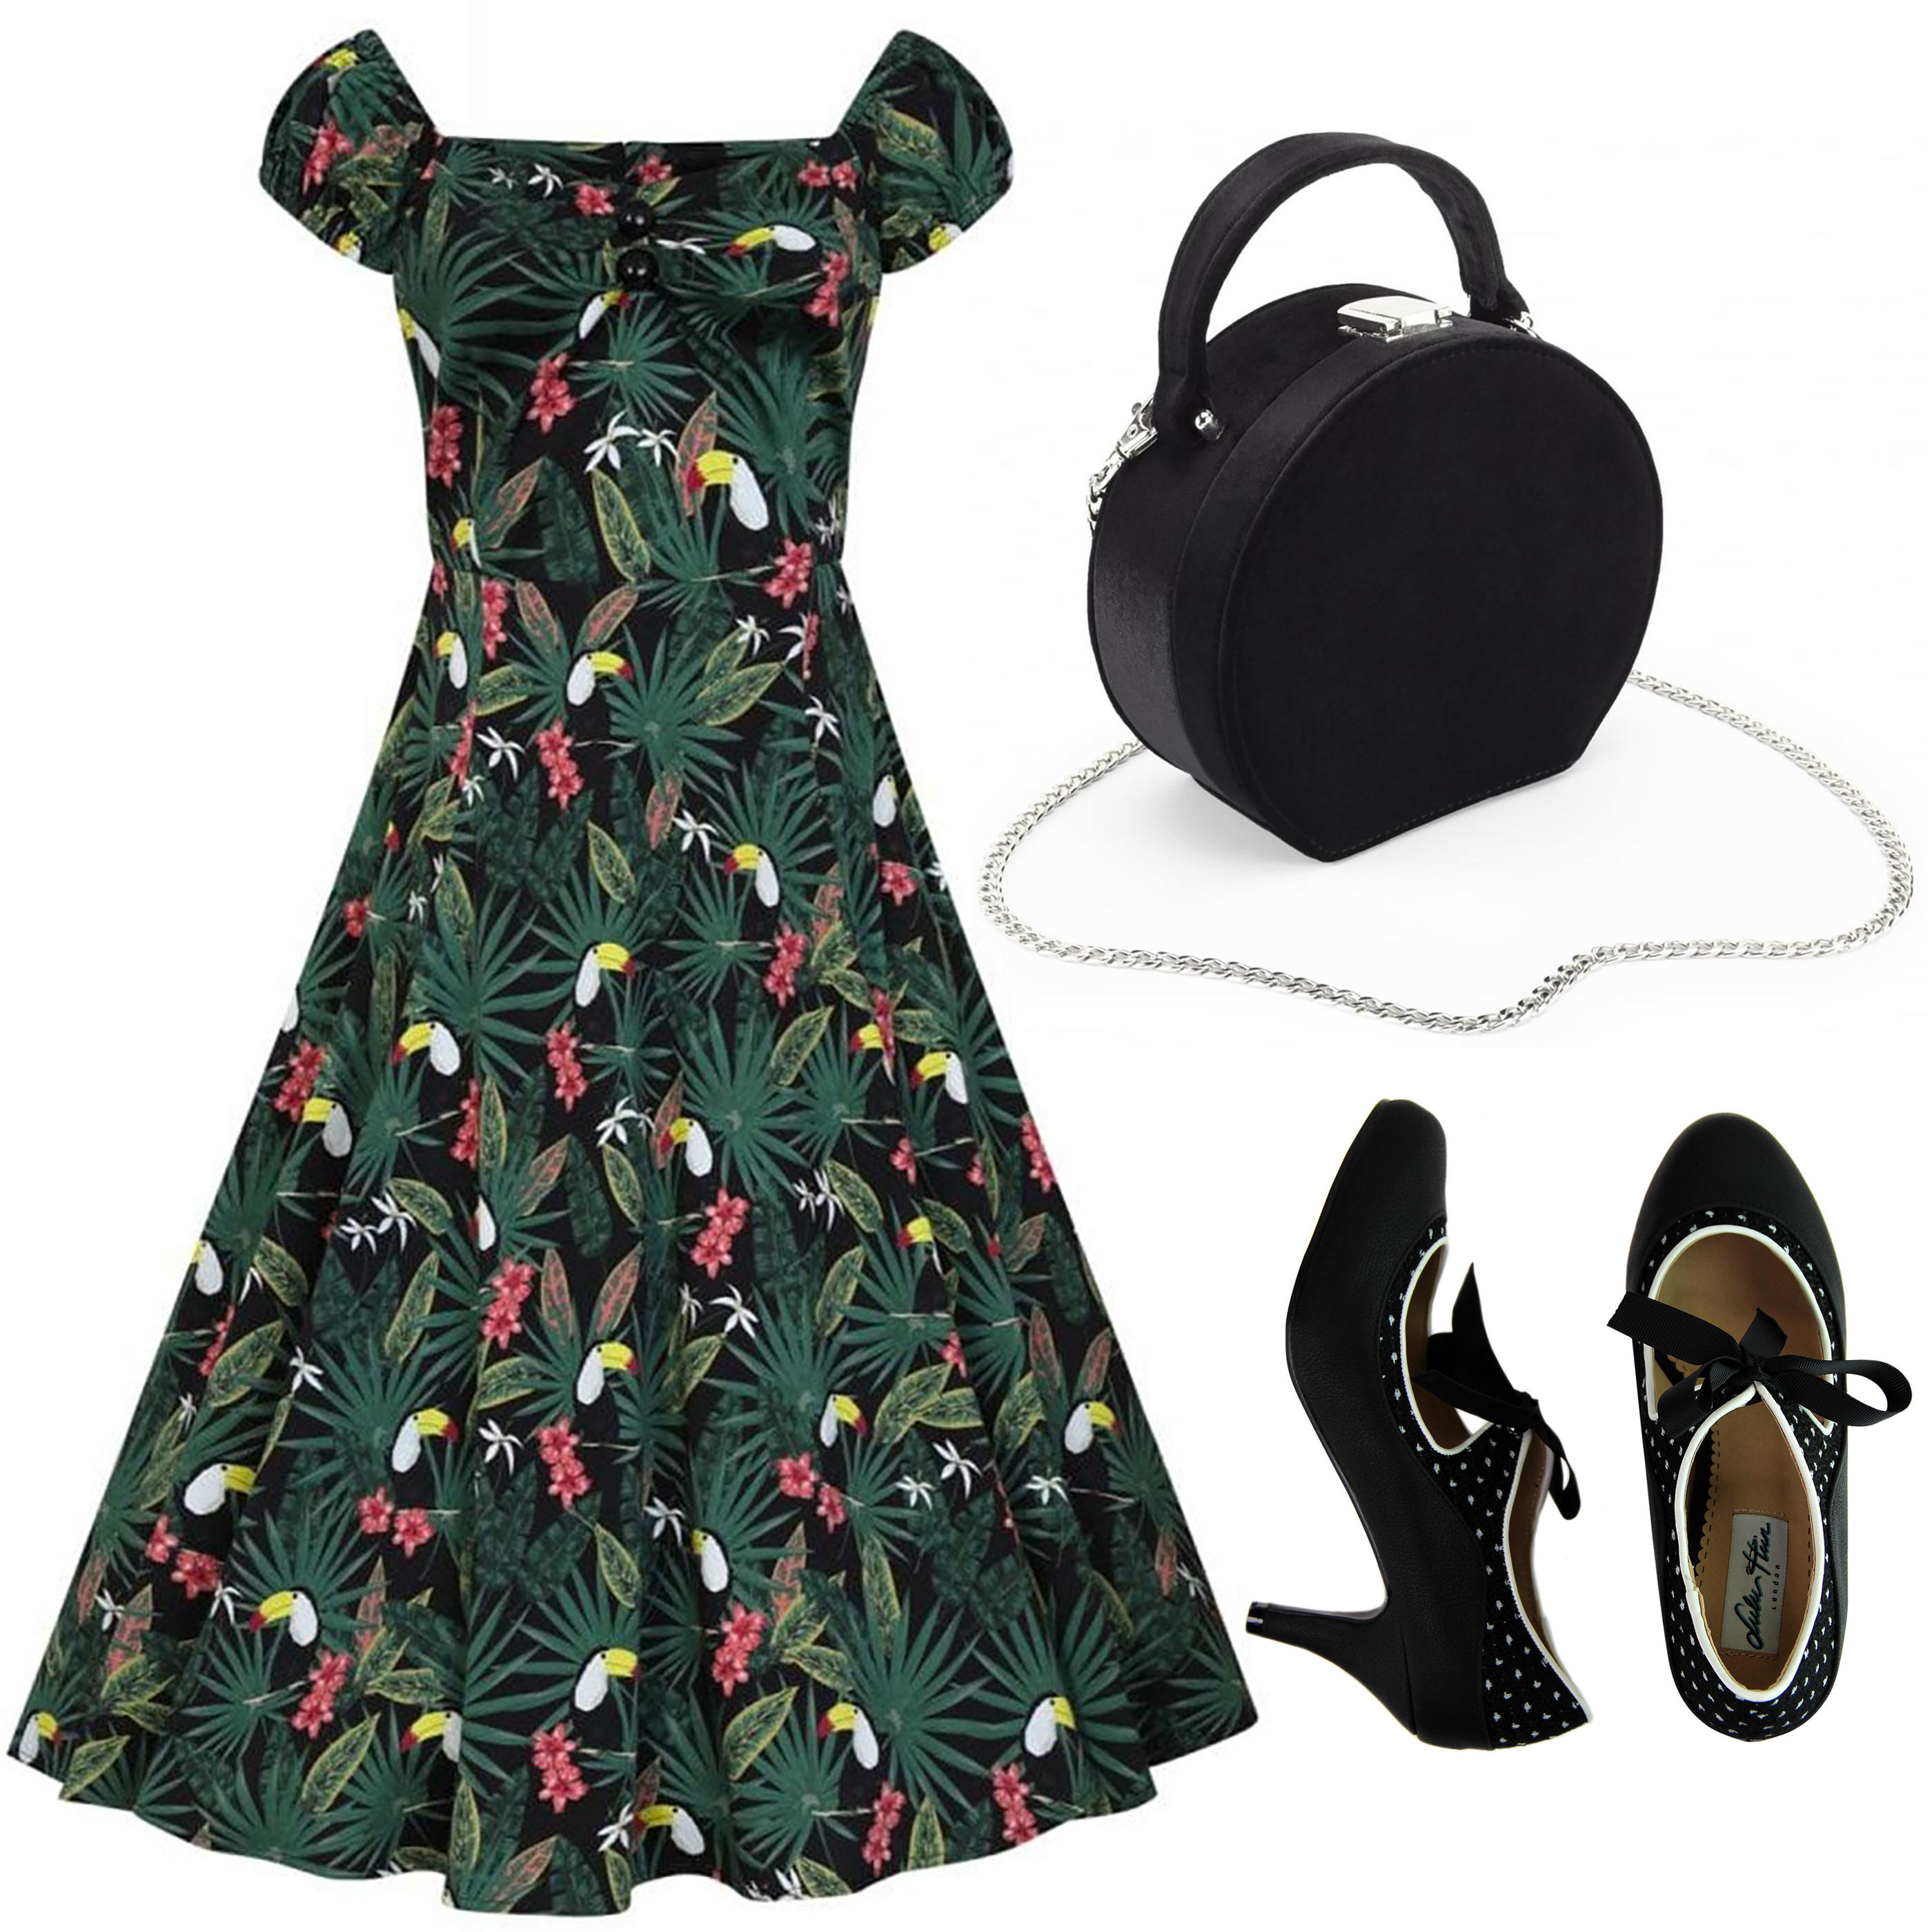 Collectif Dolores swing dress with Joe Browns Oracle bag and Jeanie Lulu Hun heels